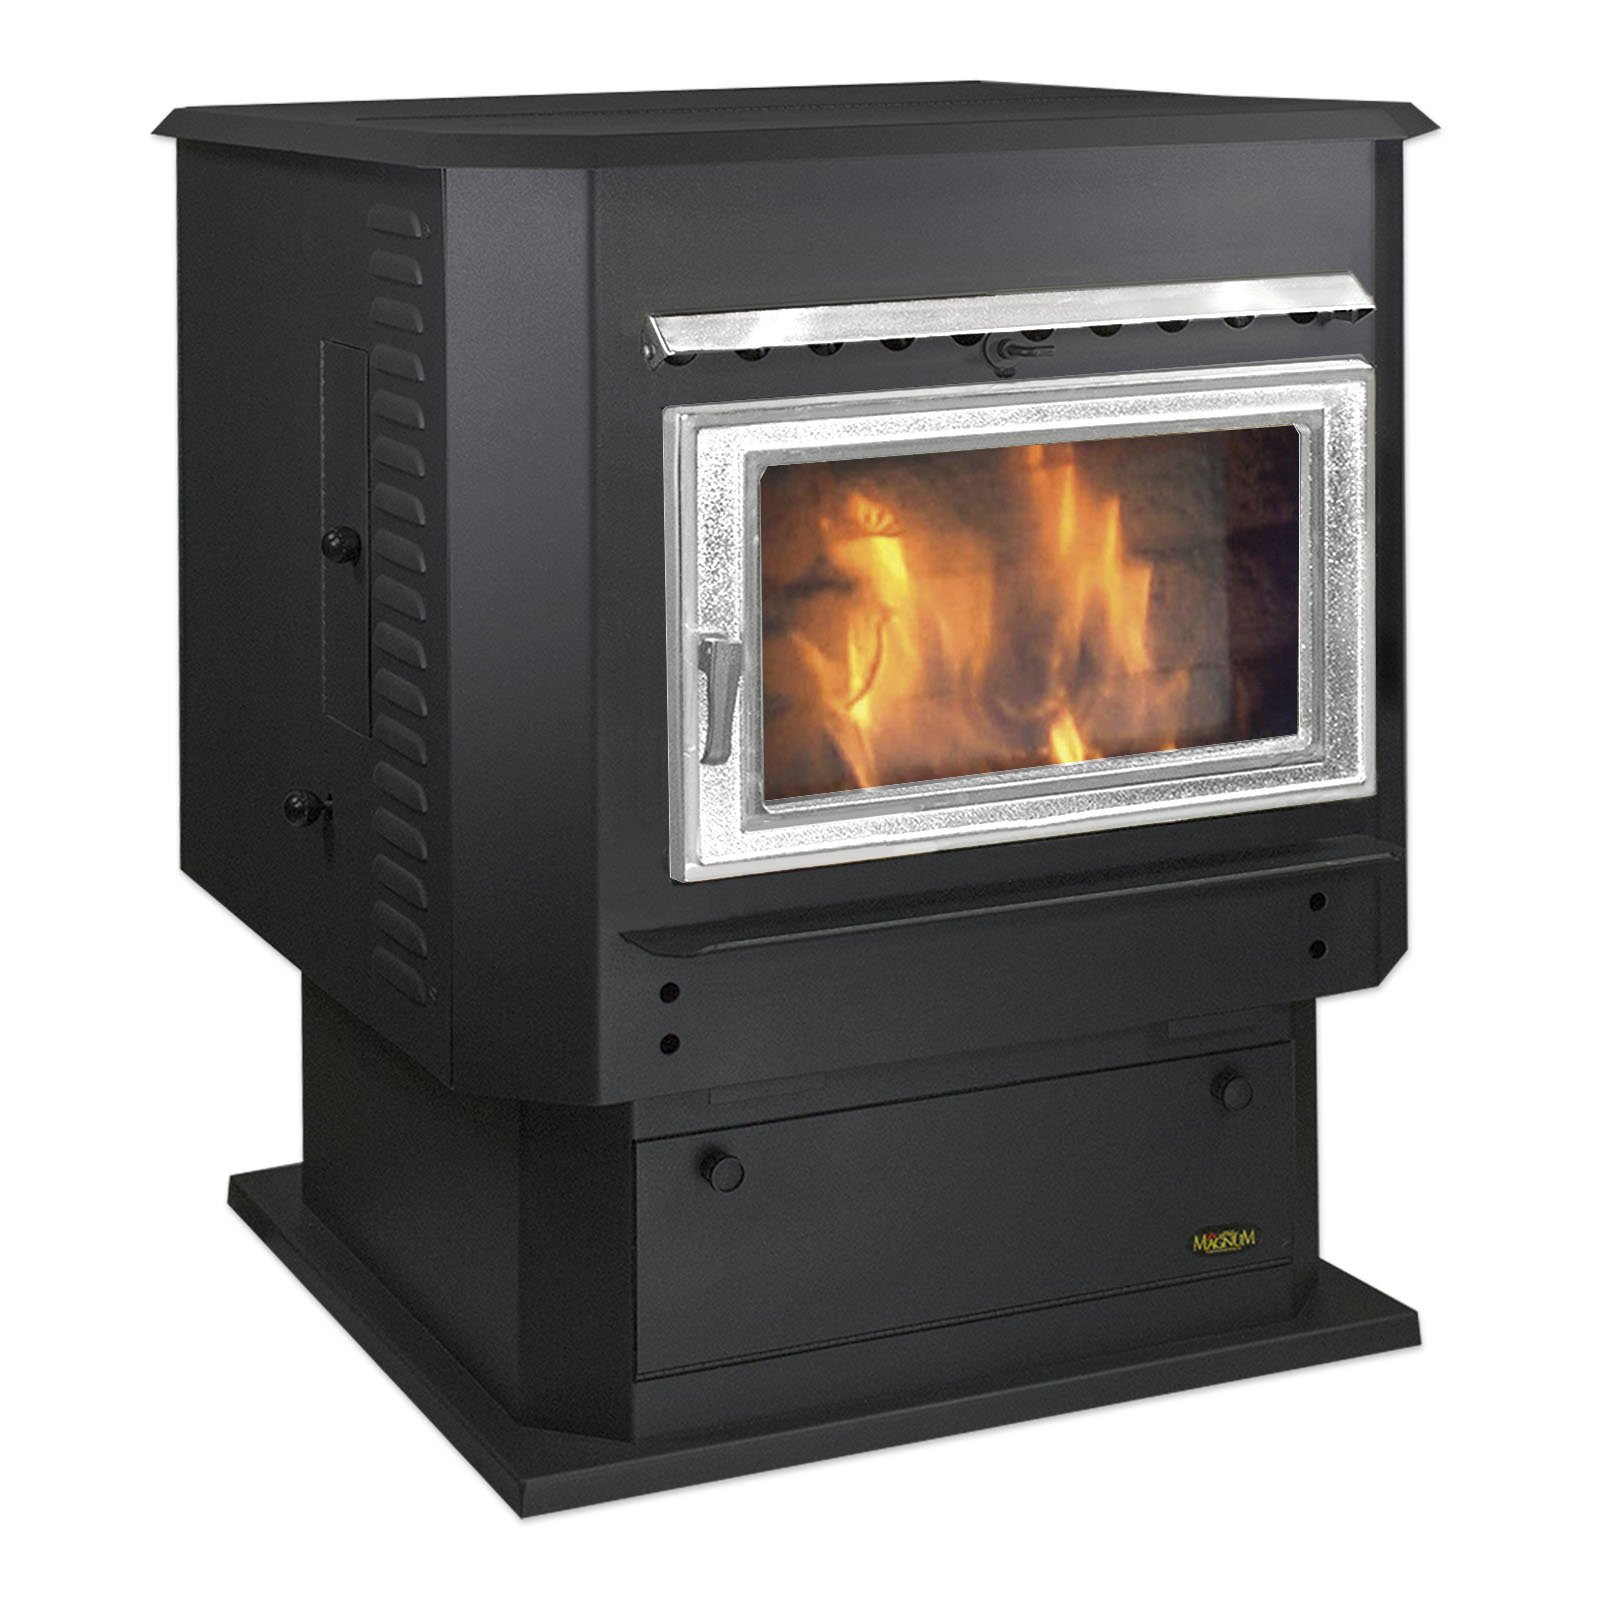 Classic Black with Nickel Door MagnuM Grand Countryside Wood Pellet Stove 56,000 BTU Hand Built in USA